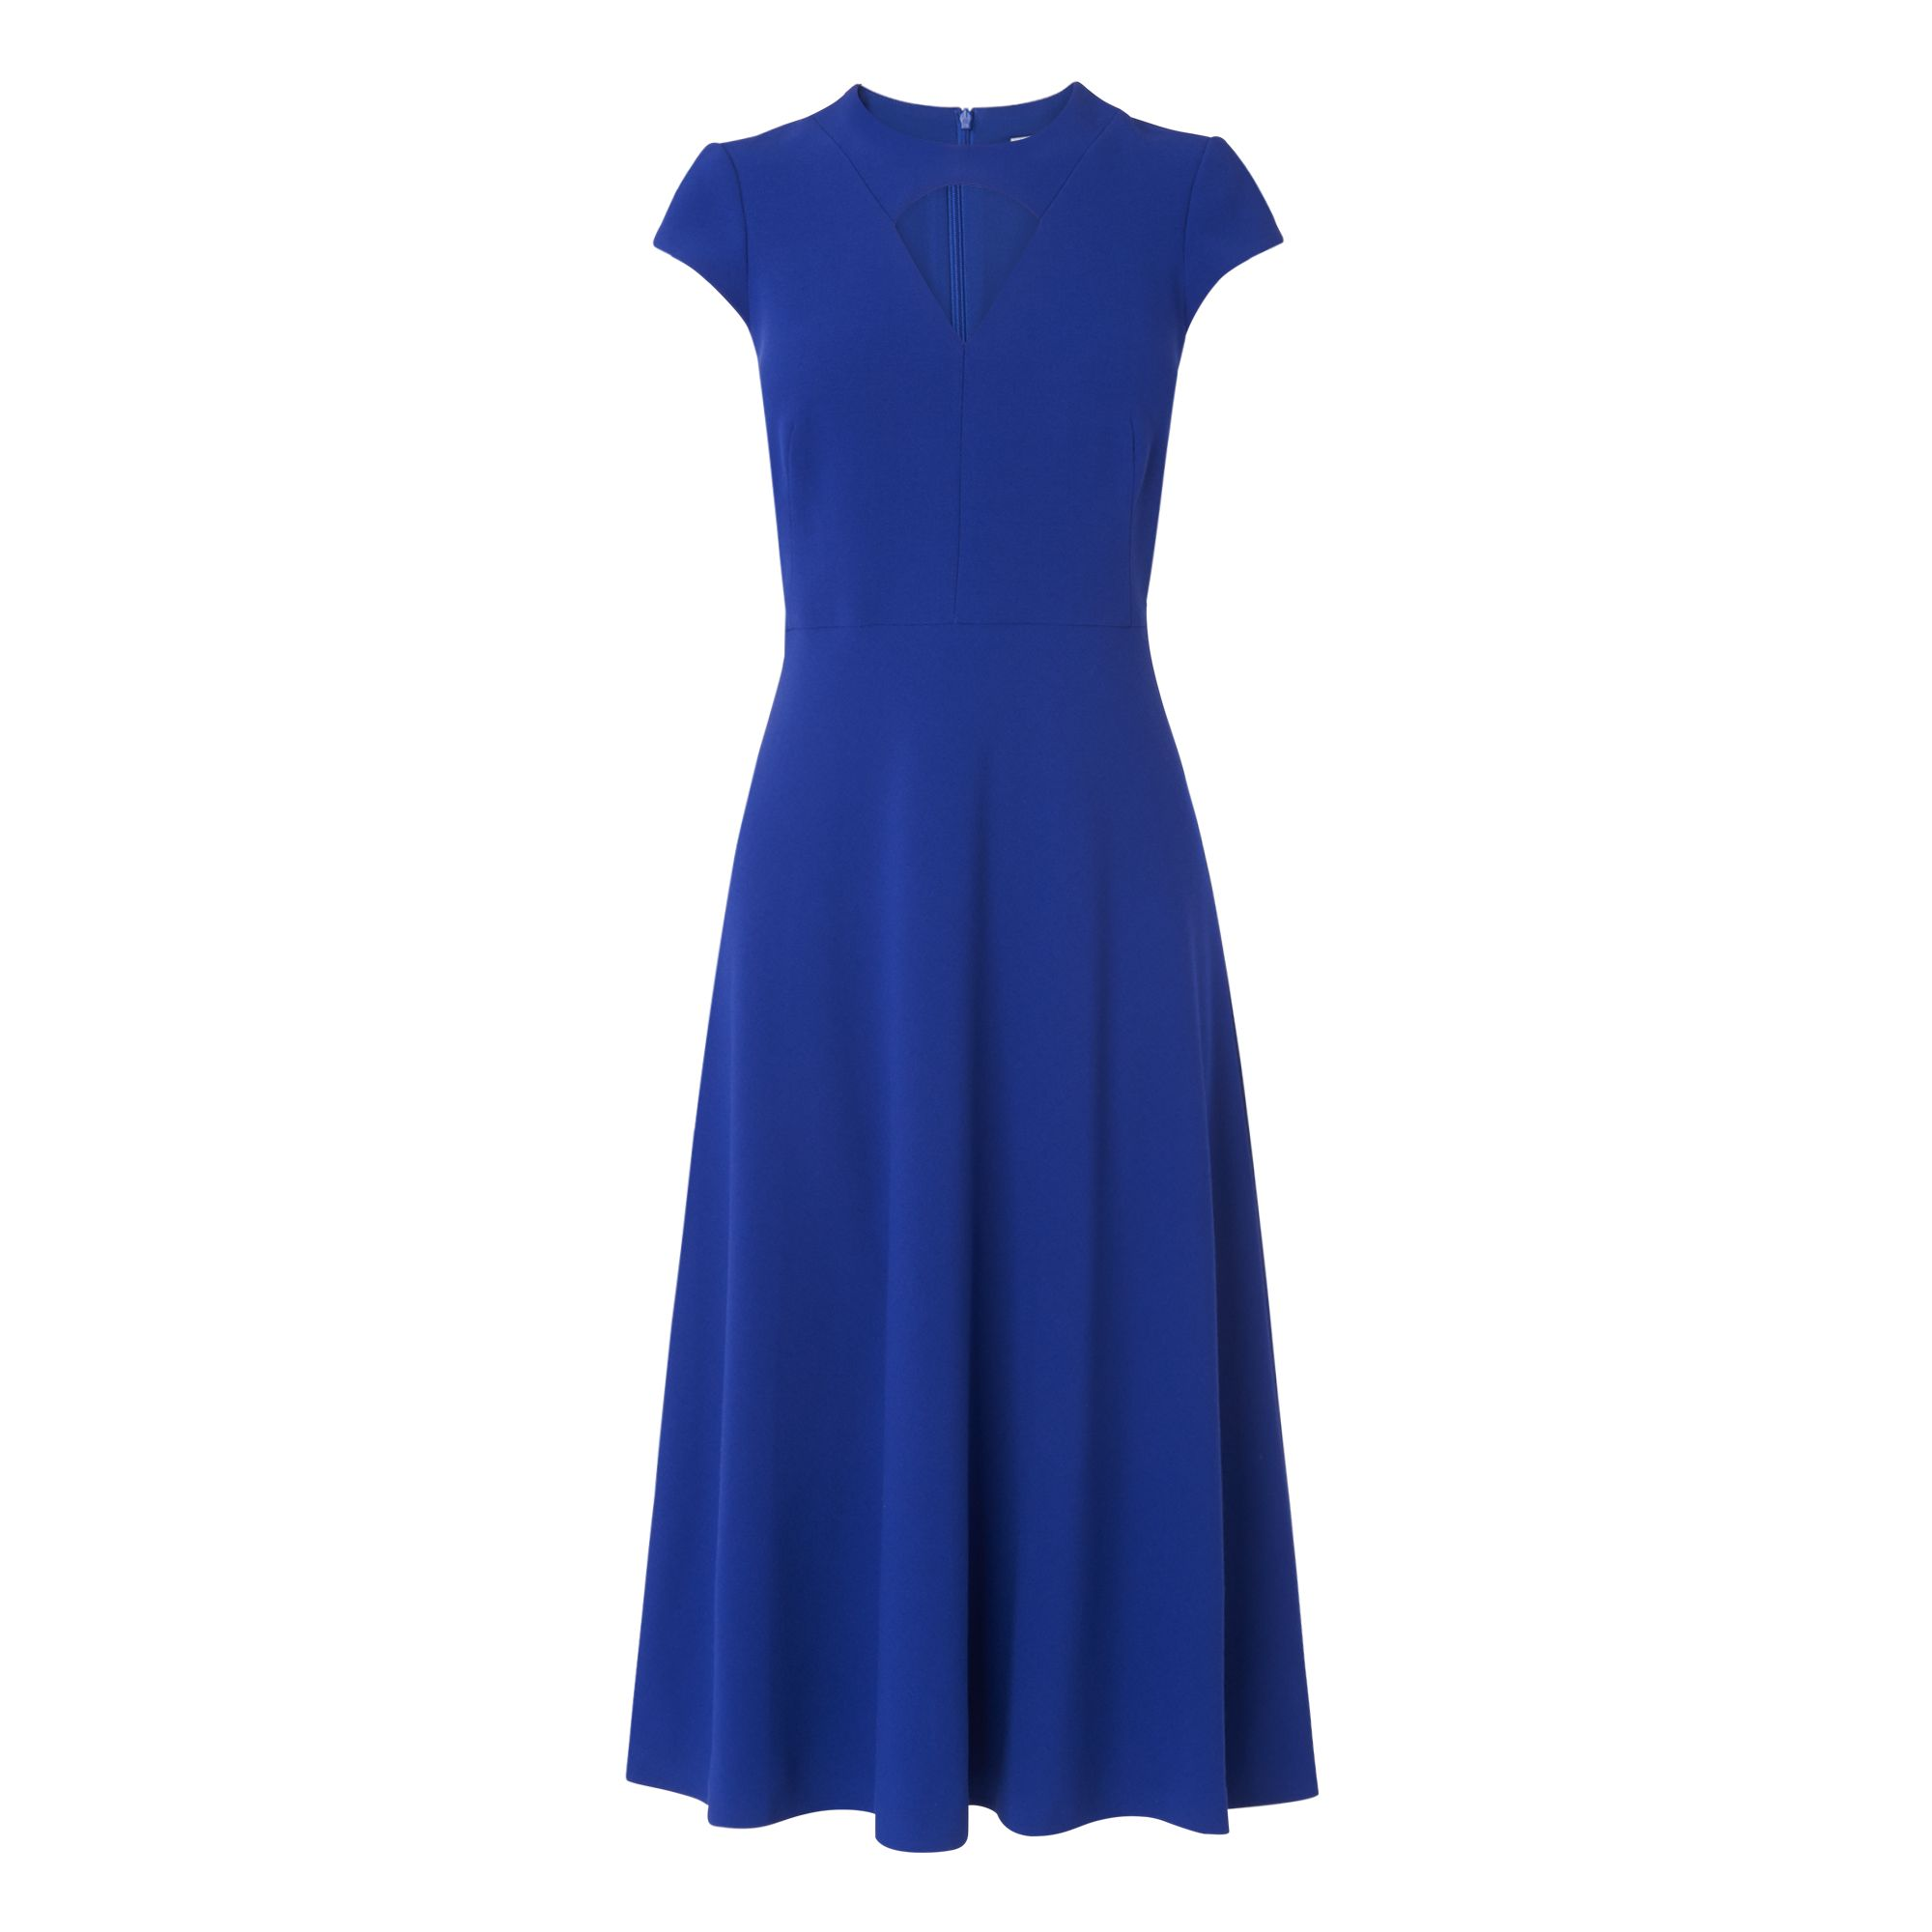 L.K. Bennett Cyra Core Dress, Blue